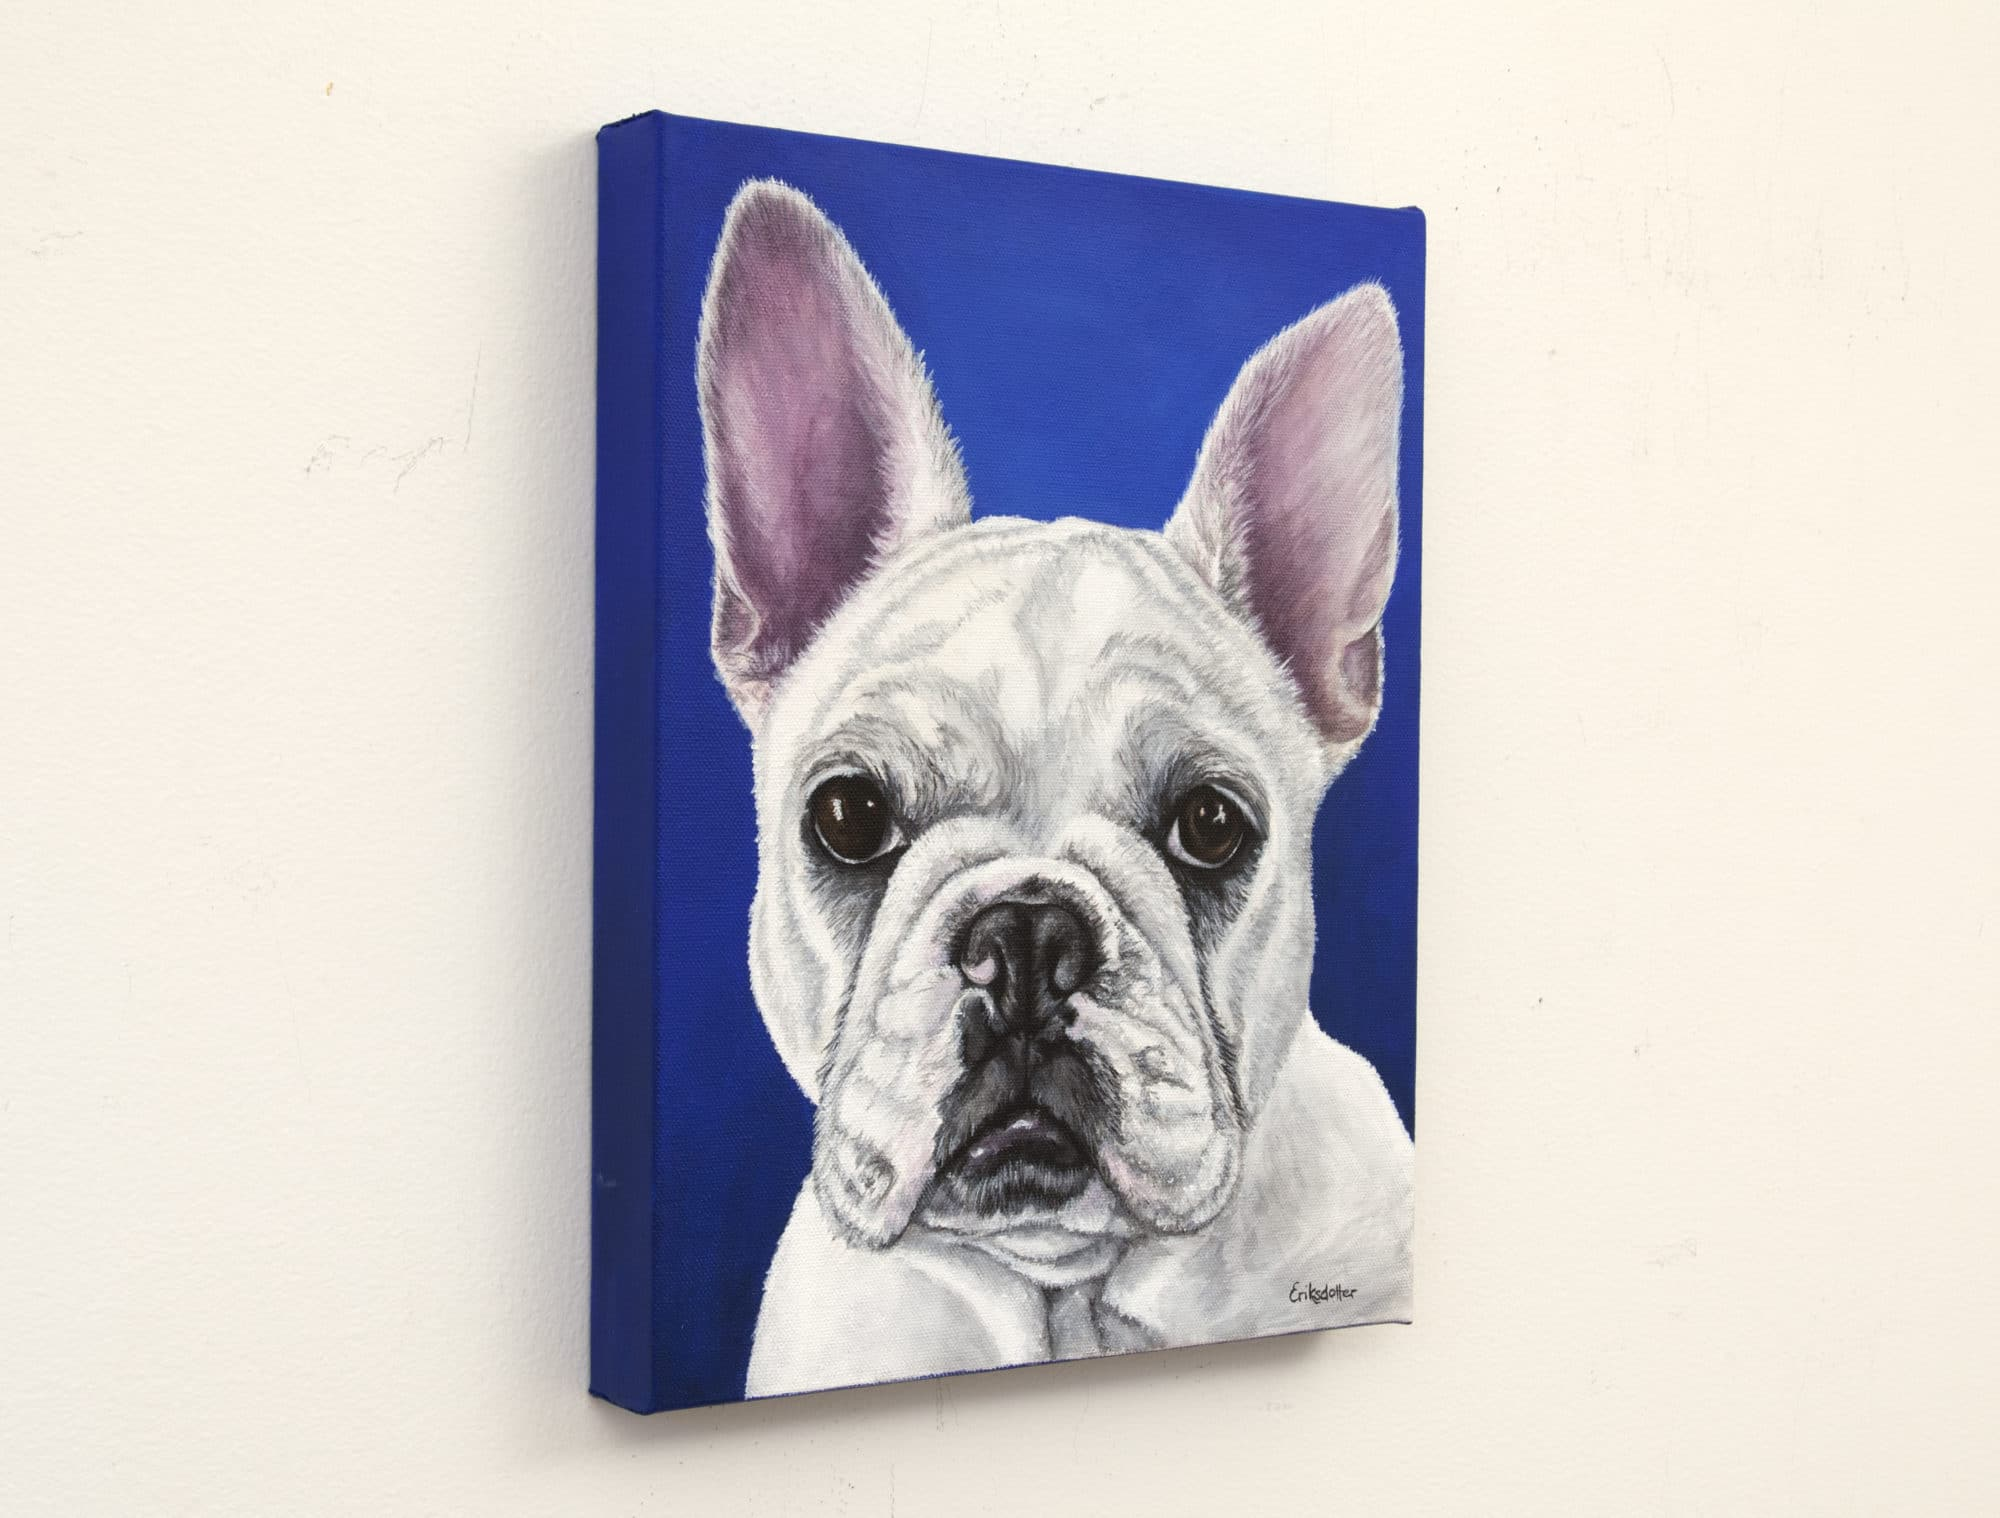 Pet portrait of a french bulldog by artist Erica Eriksdotter